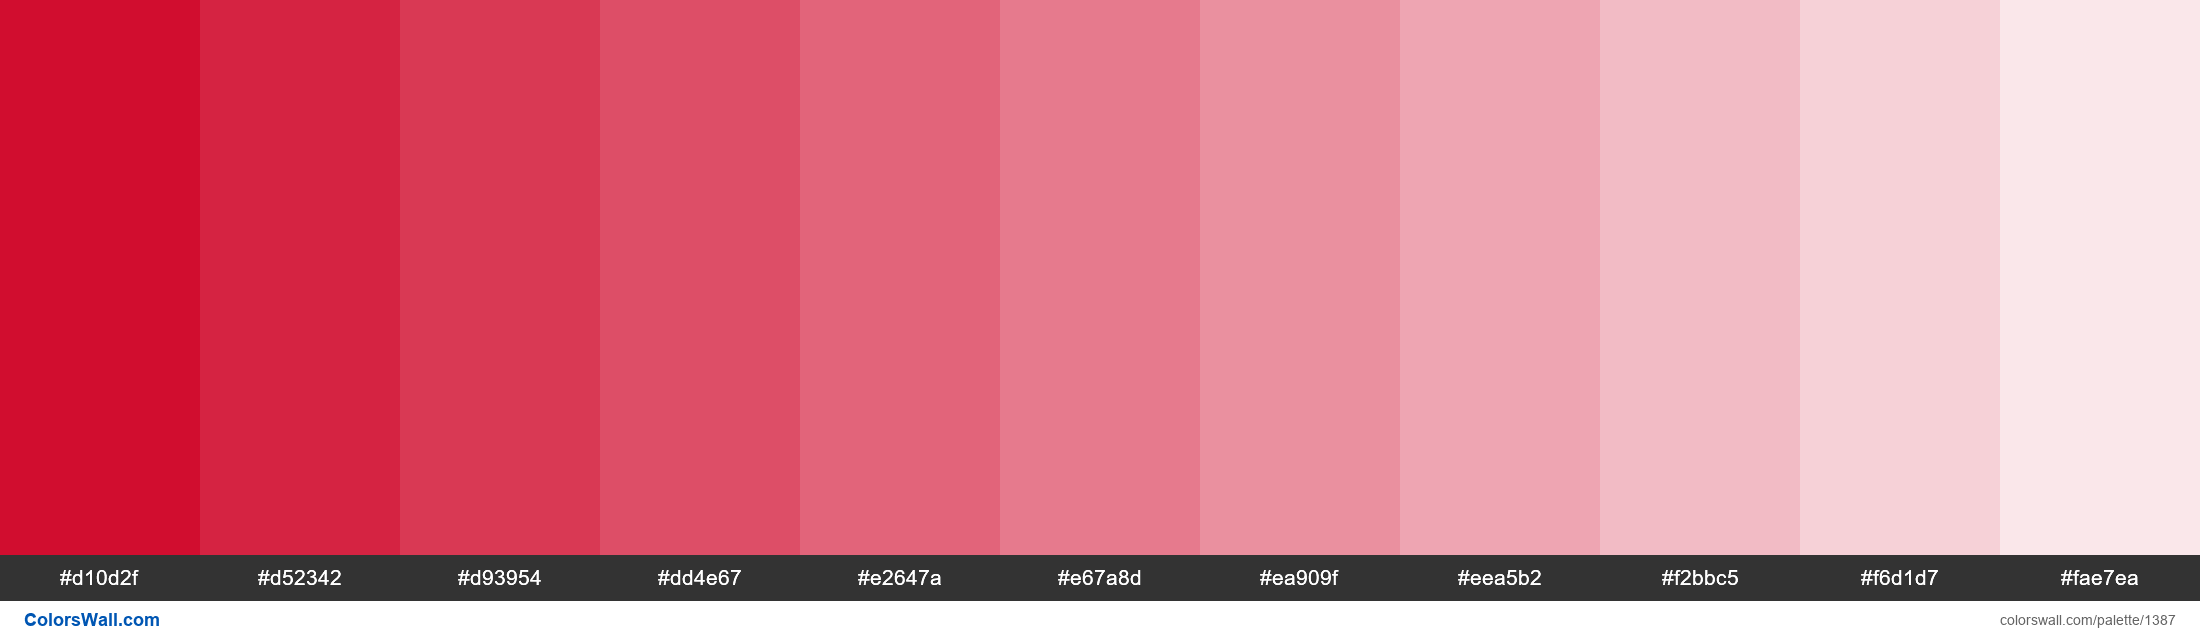 Red tints - #1387